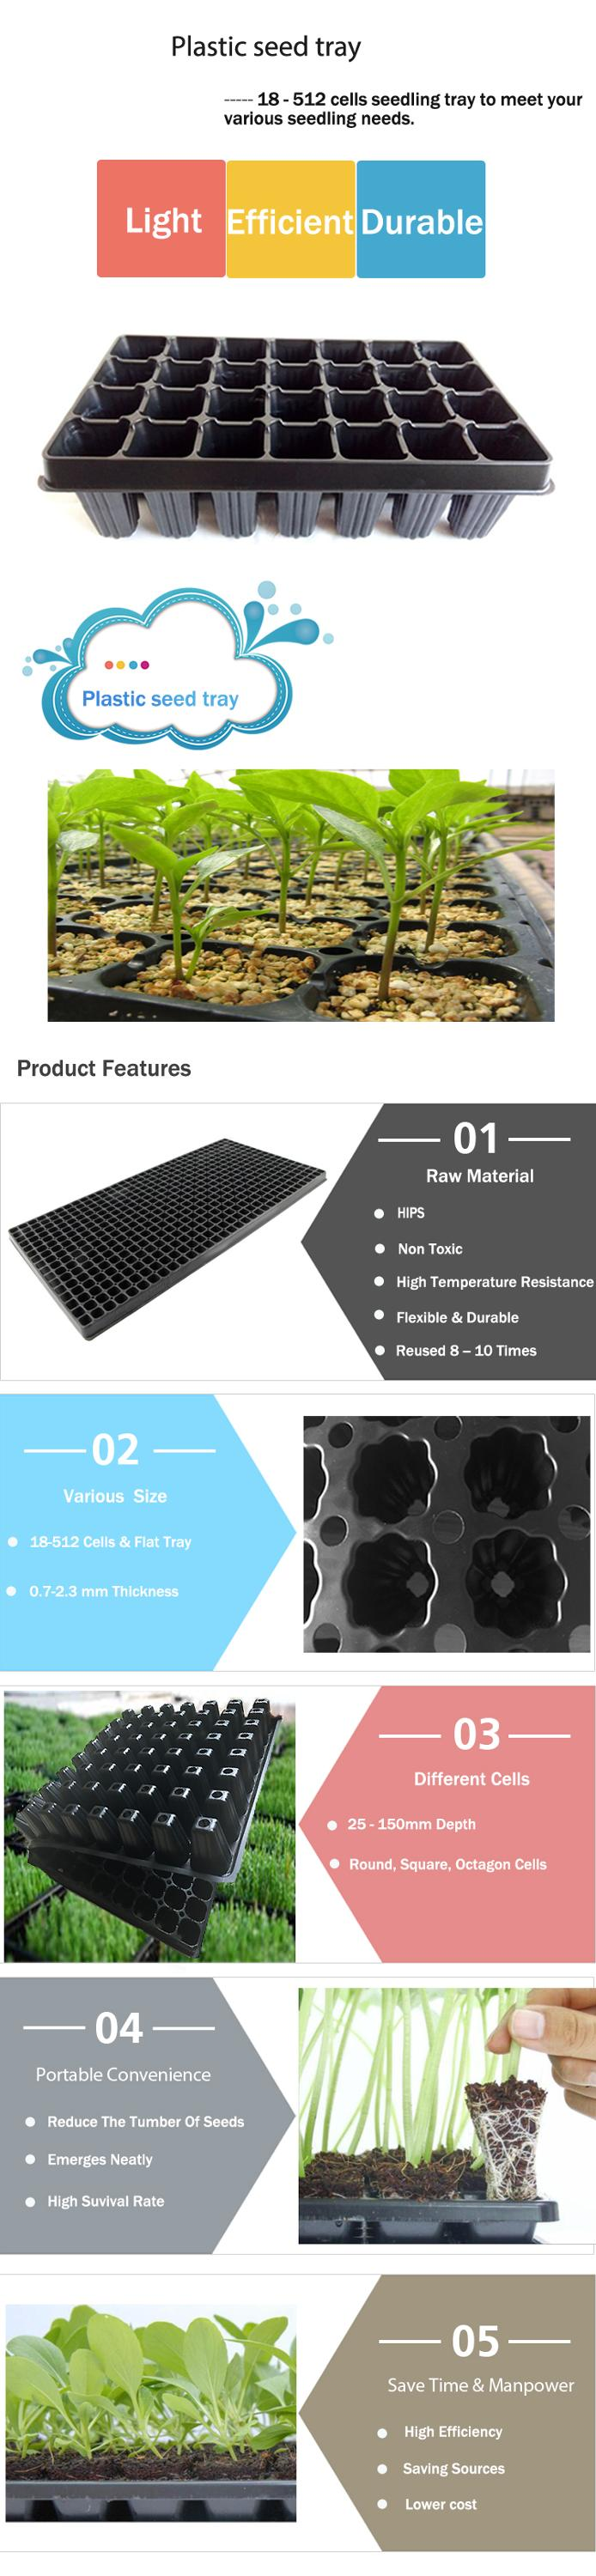 hot sale black PS material 128 cell seed tray for vegetable nursery